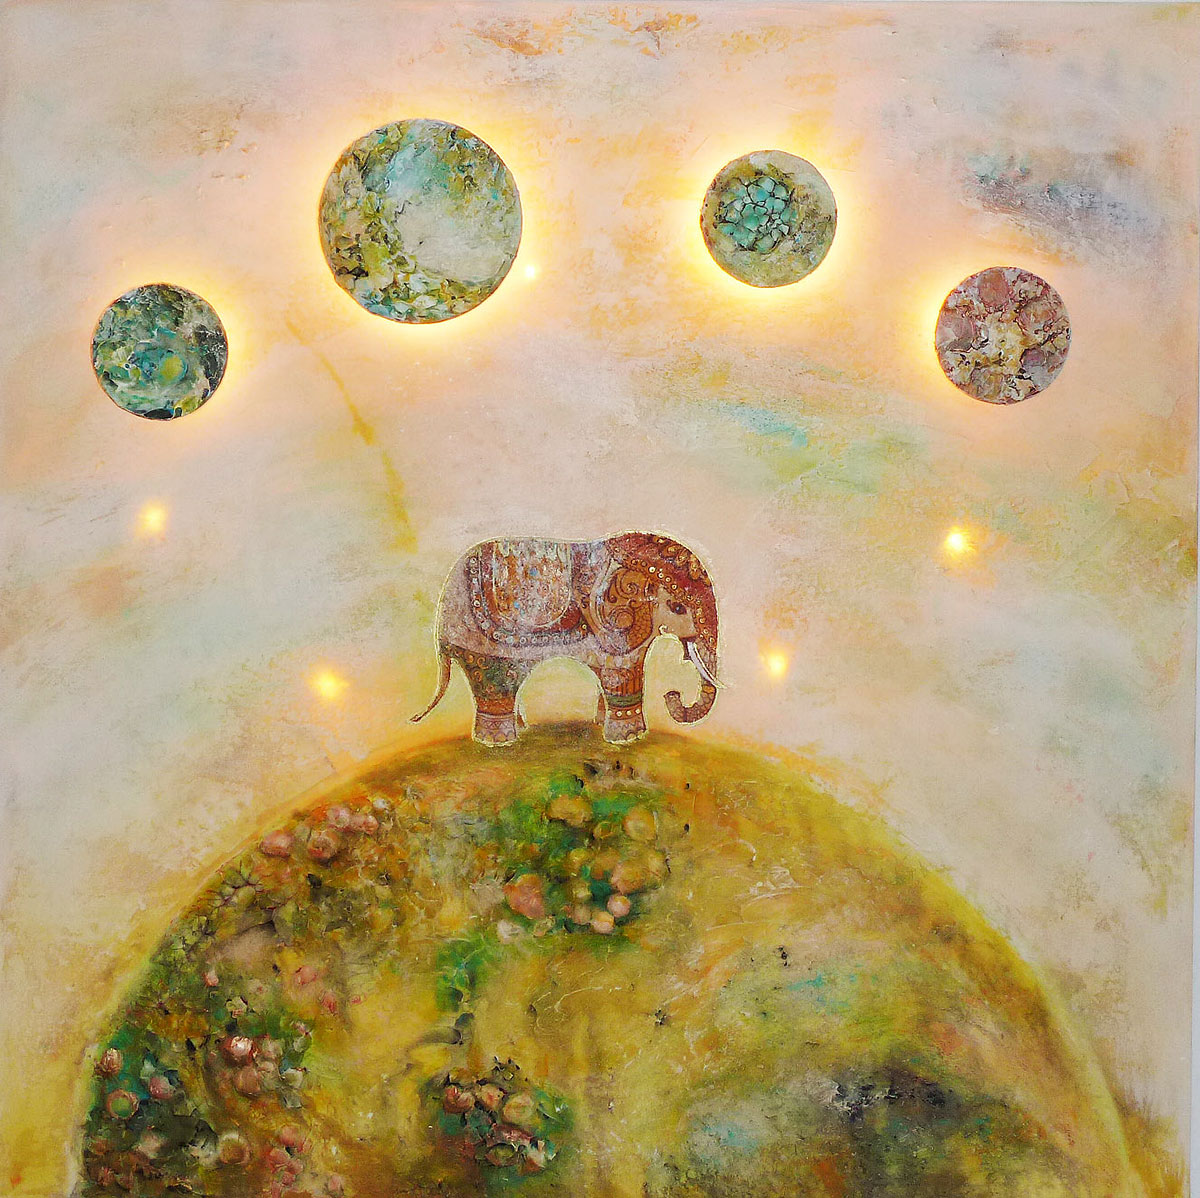 Light Painting: Elephant - Gallery for light art, acrylic paintings ...